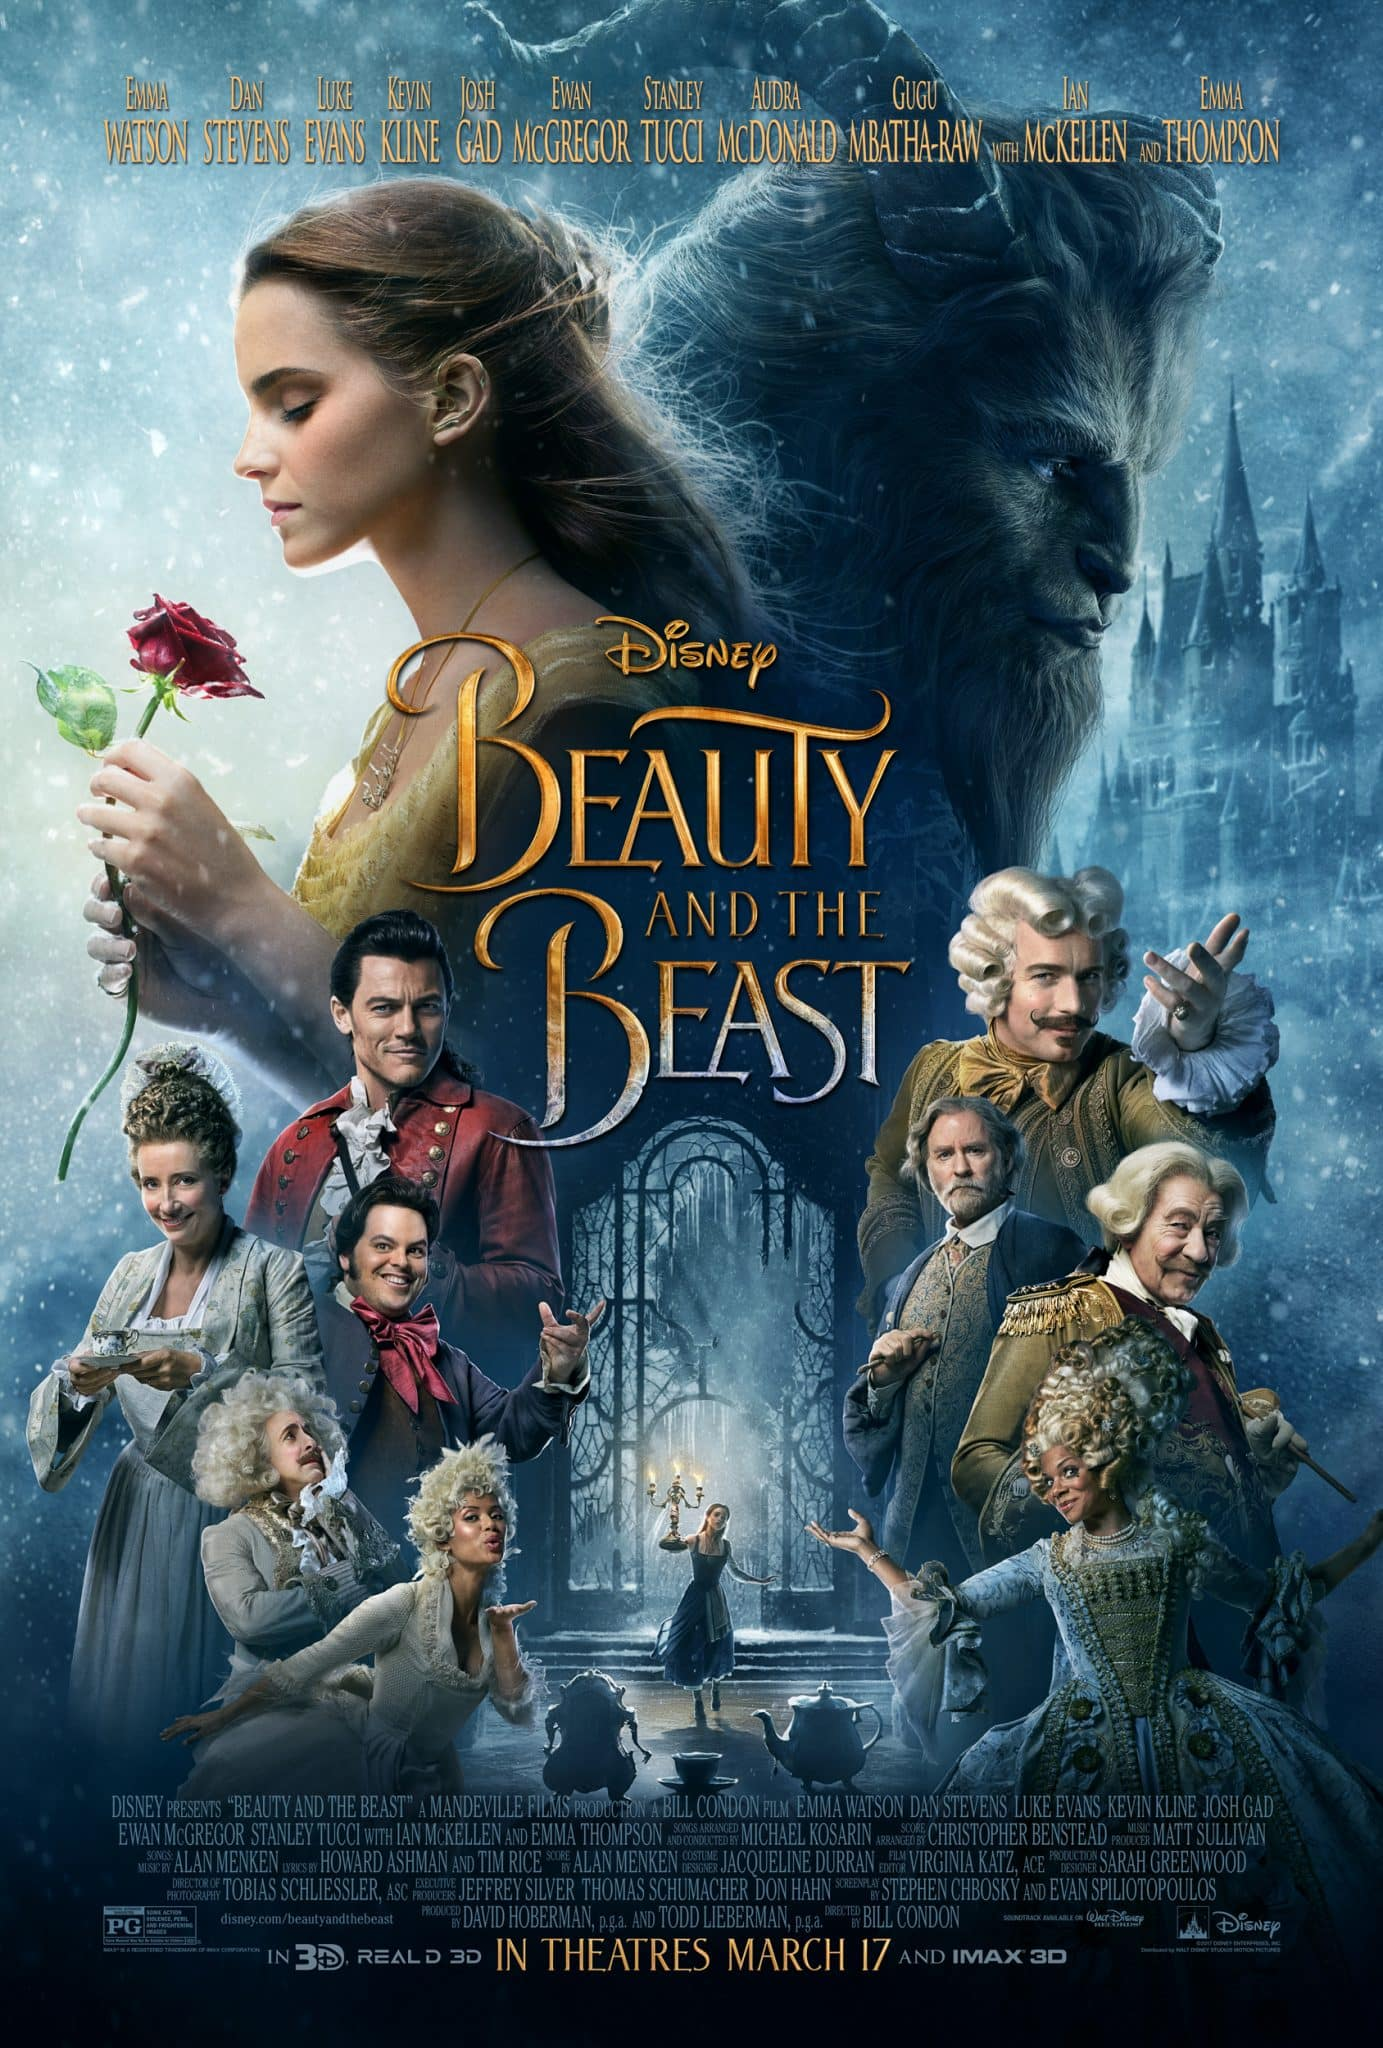 Beauty And The Beast In Theaters! #BeautyAndTheBeast #BeOurGuest